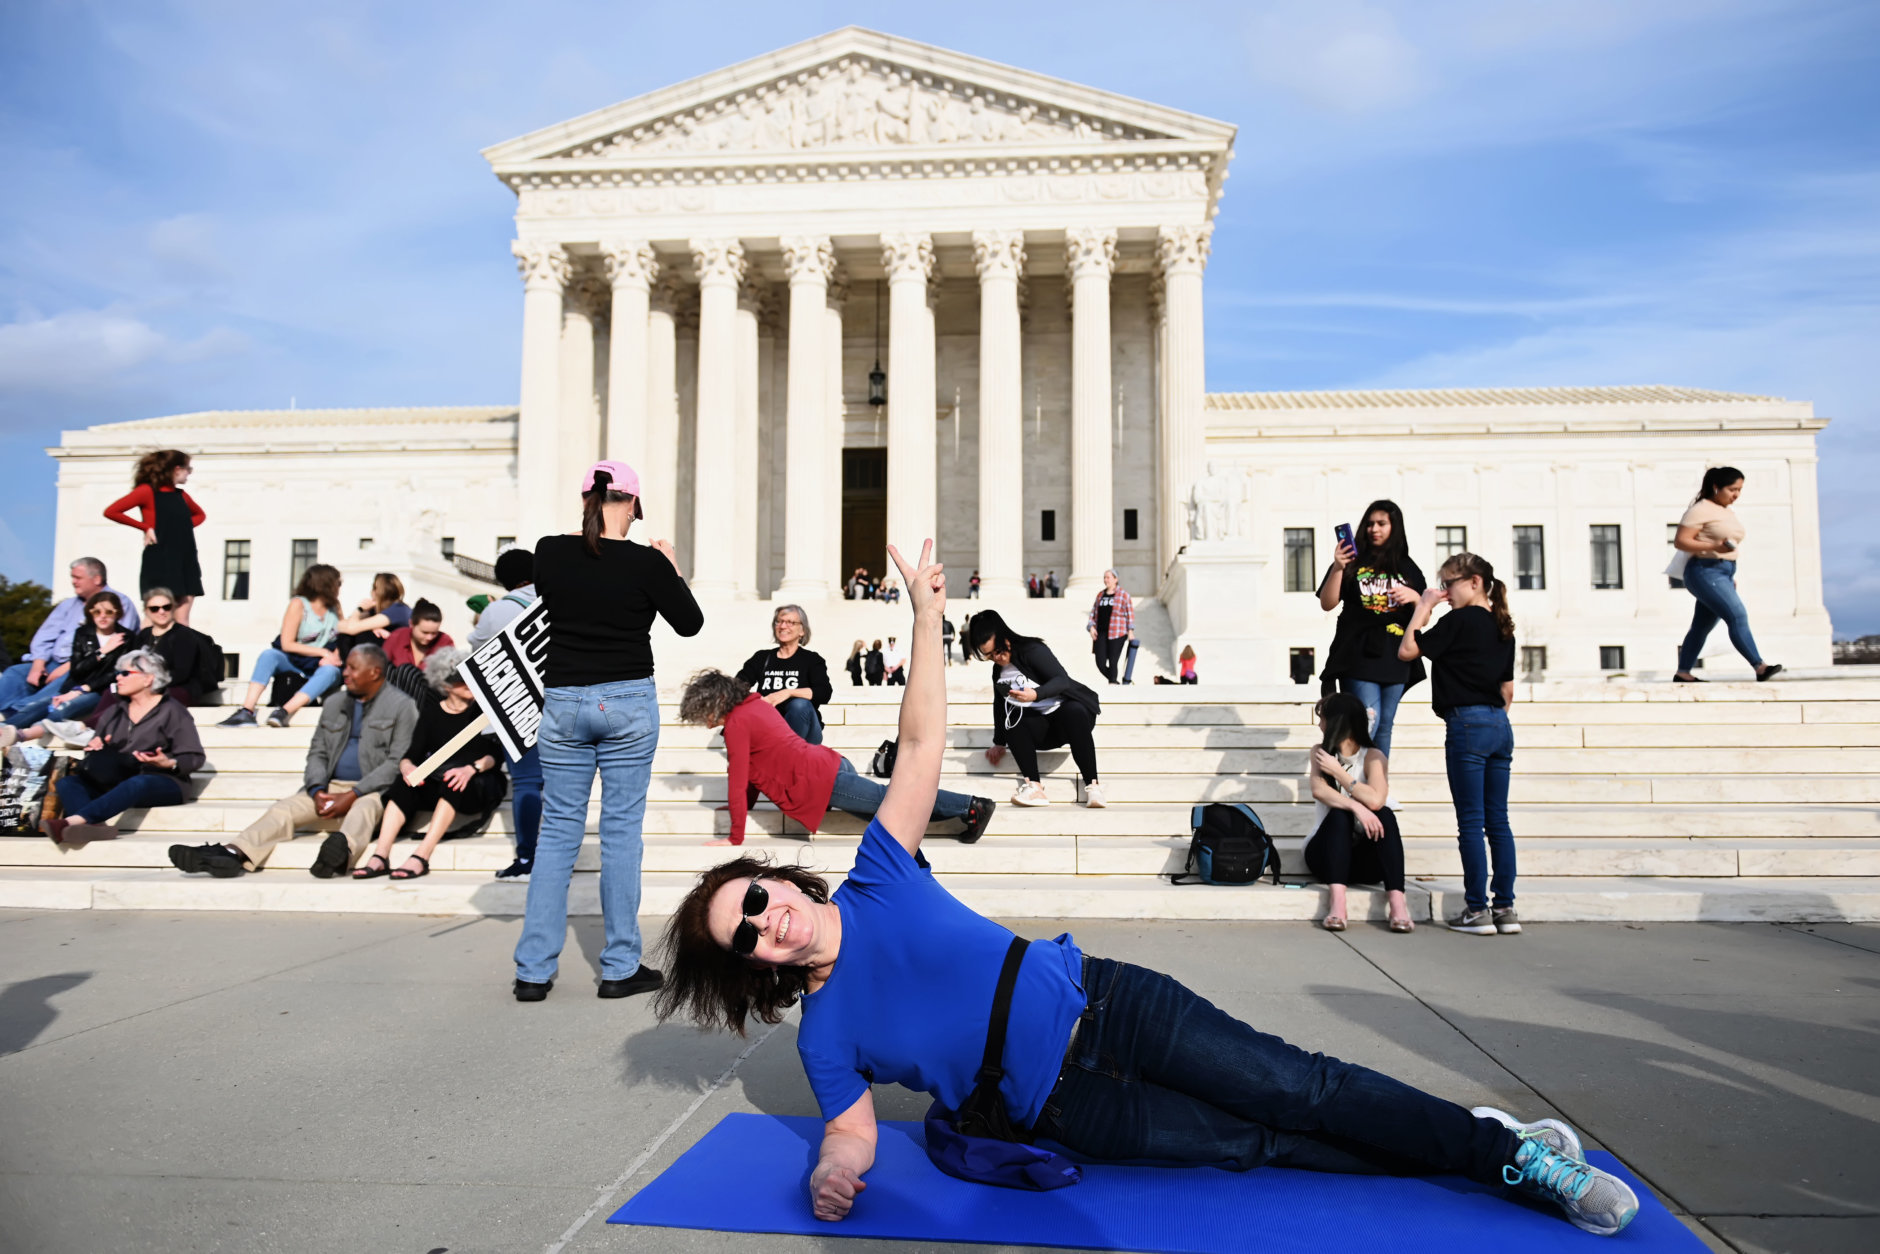 A perfect side plank in honor of Justice Ginsburg. (Courtesy Shannon Finney)